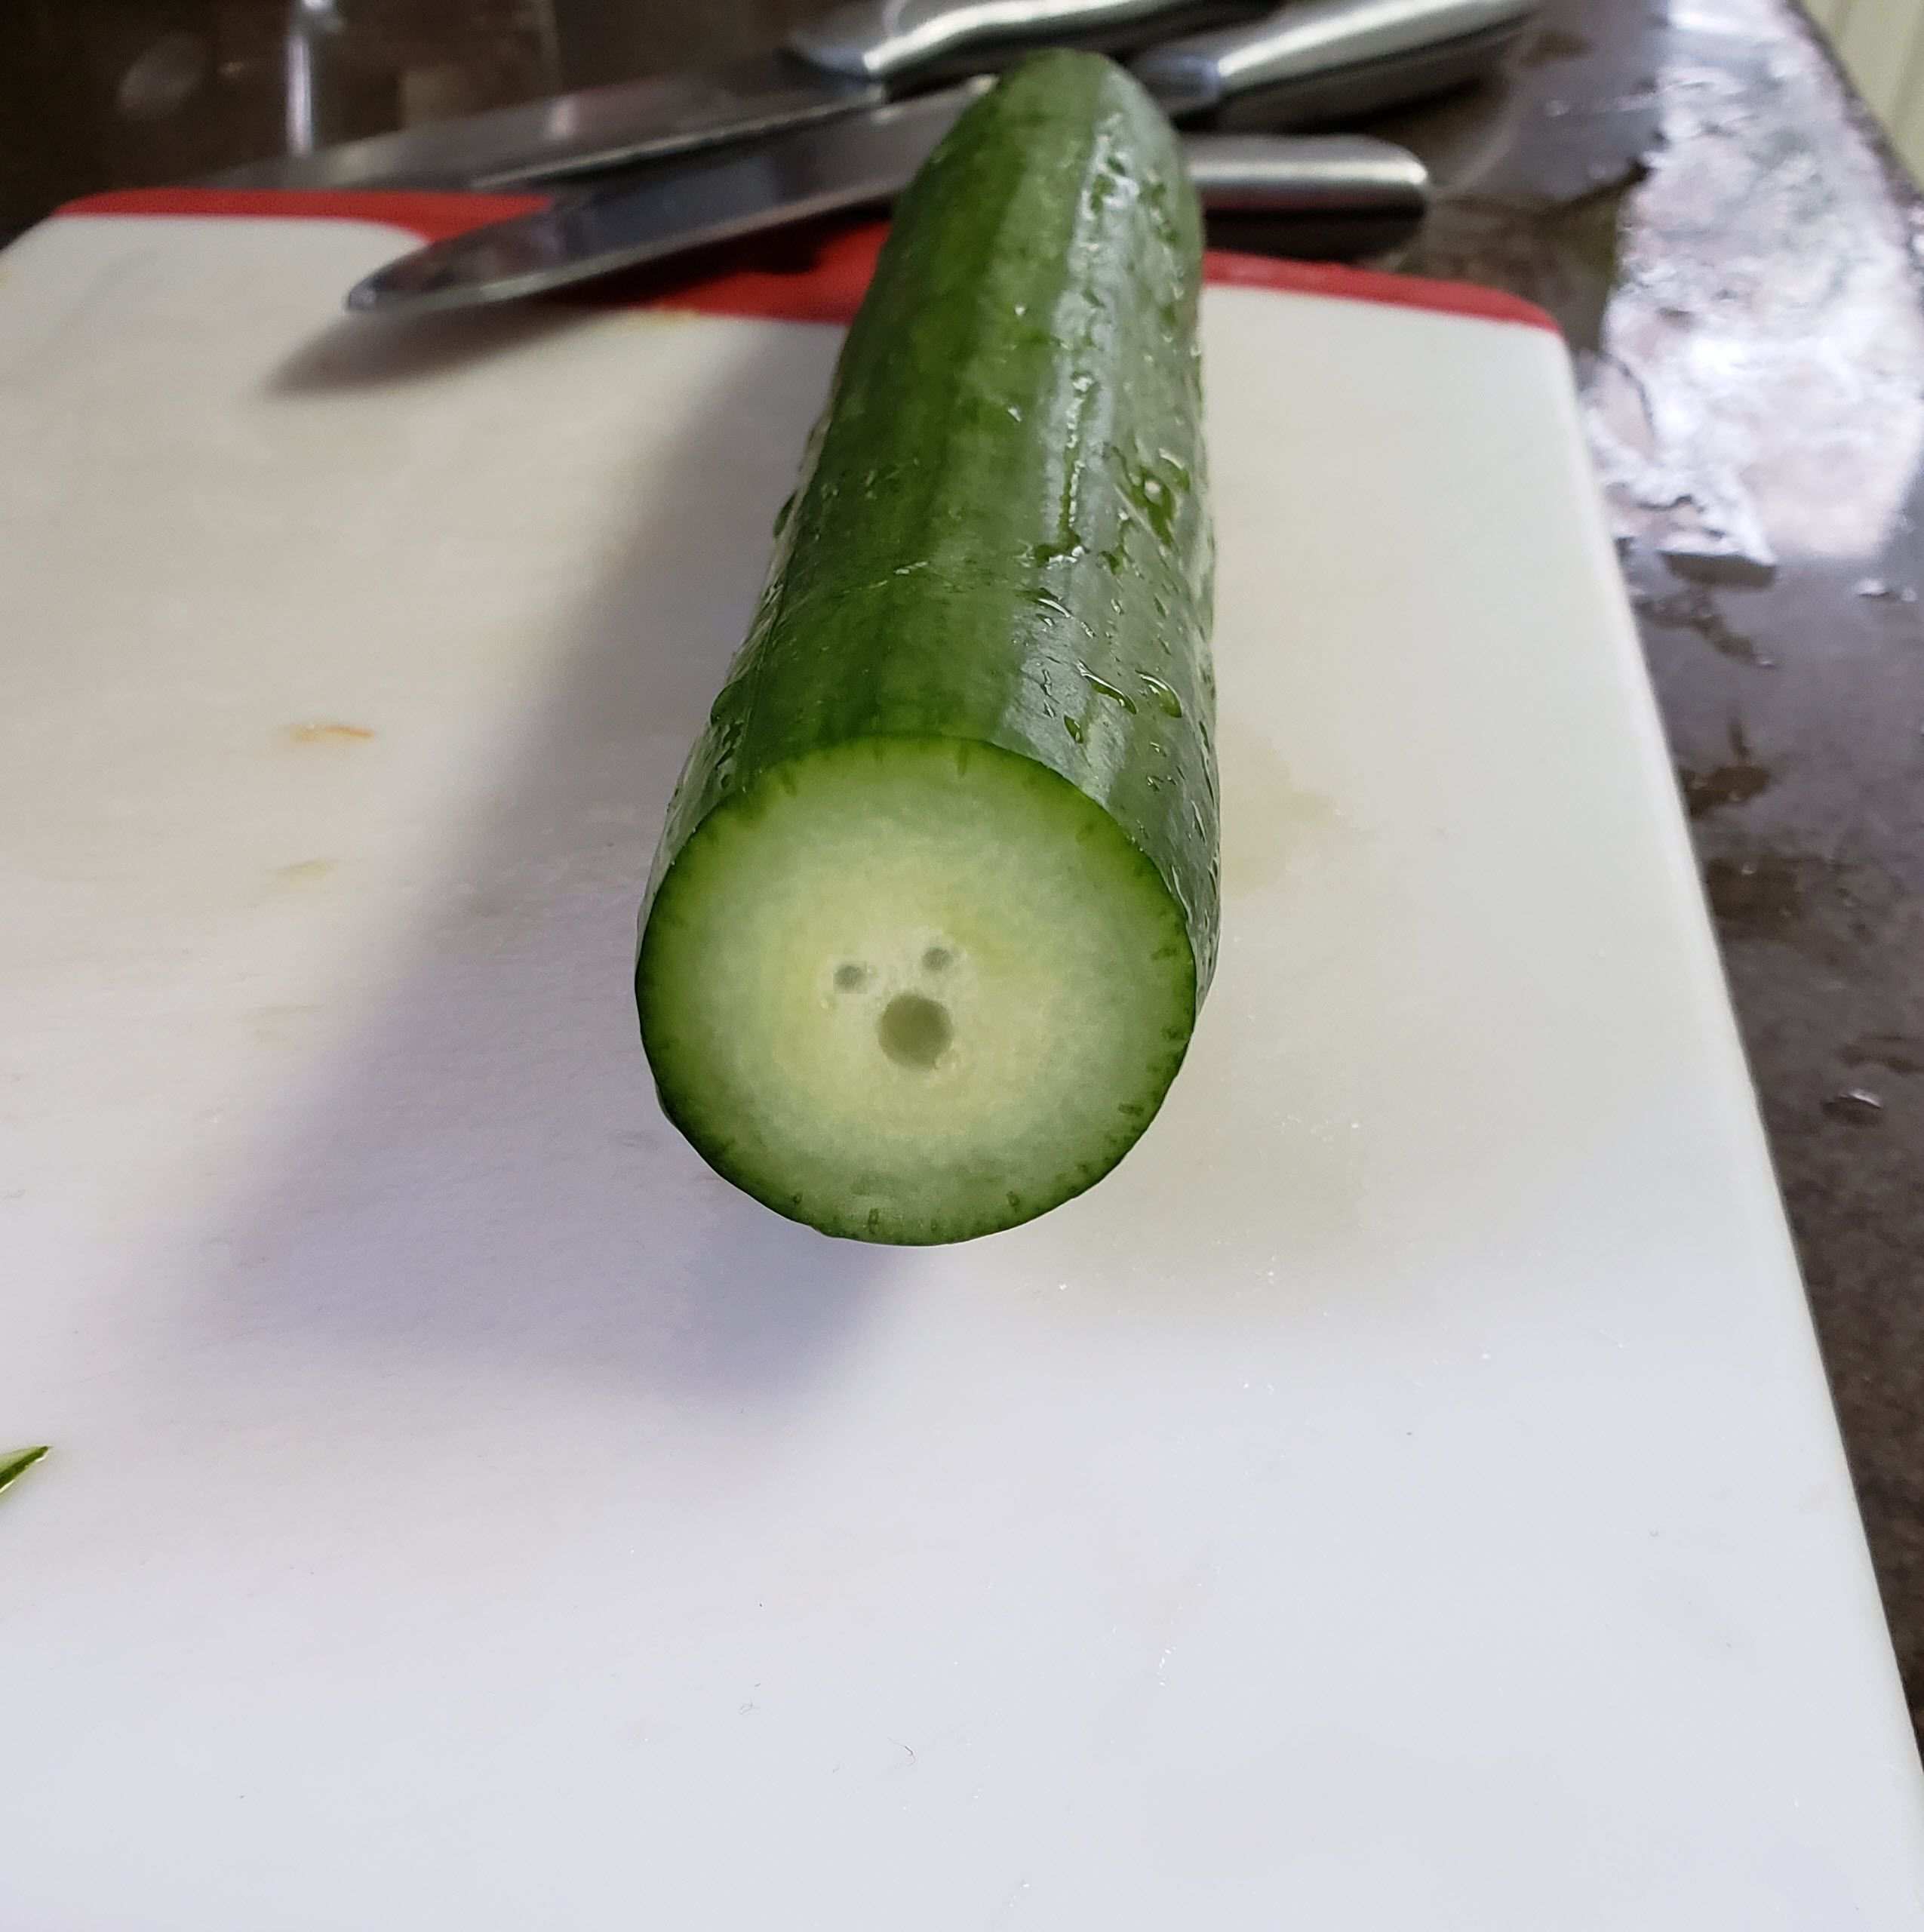 I cut a cucumber. I don't think it was aware that was going to happen.